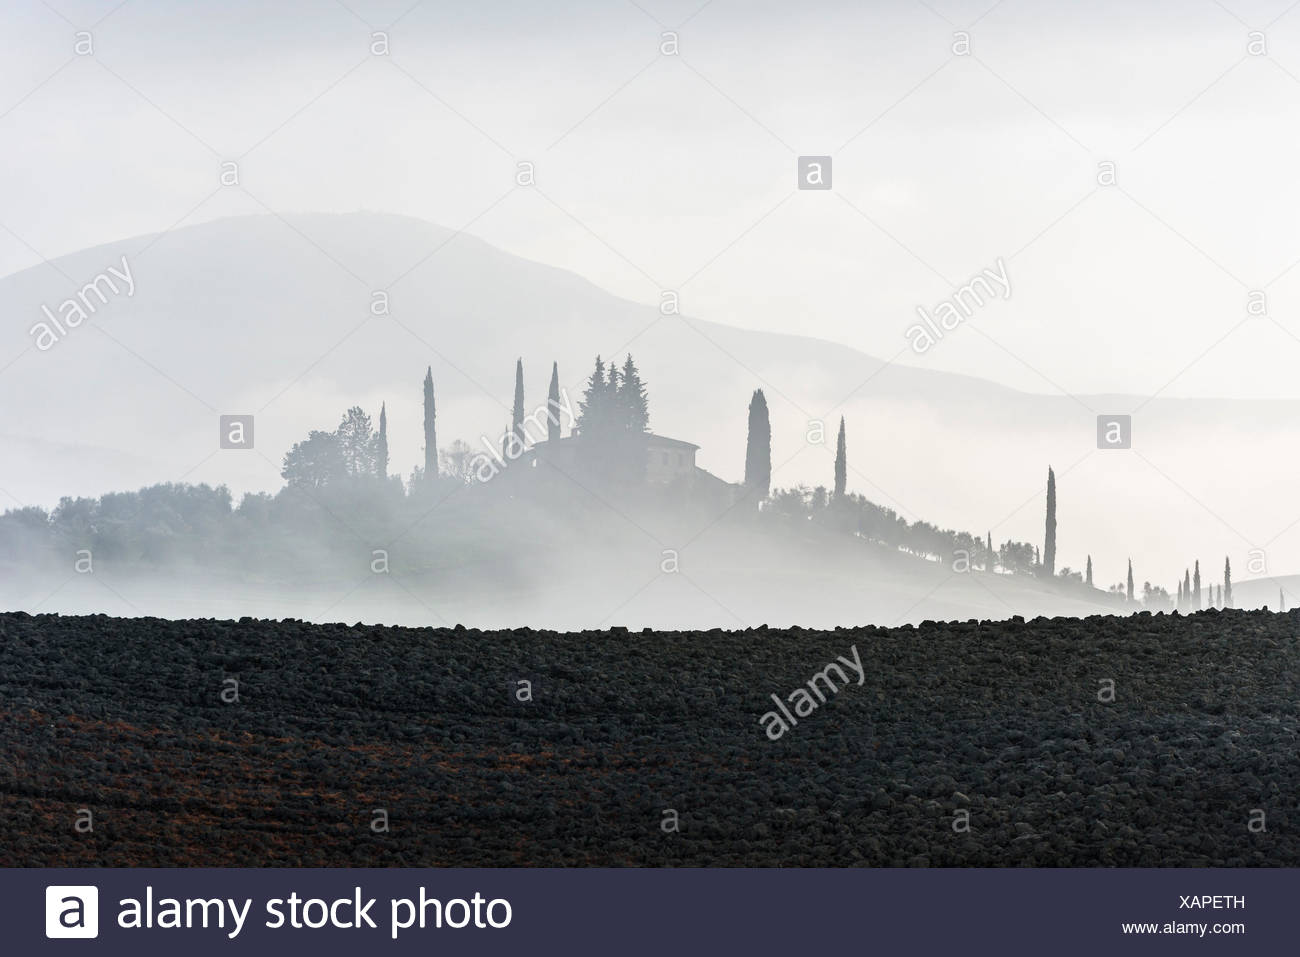 Gray Tuscany plowed land and distant cypress trees around a villa, disappearing in the mist - Stock Image